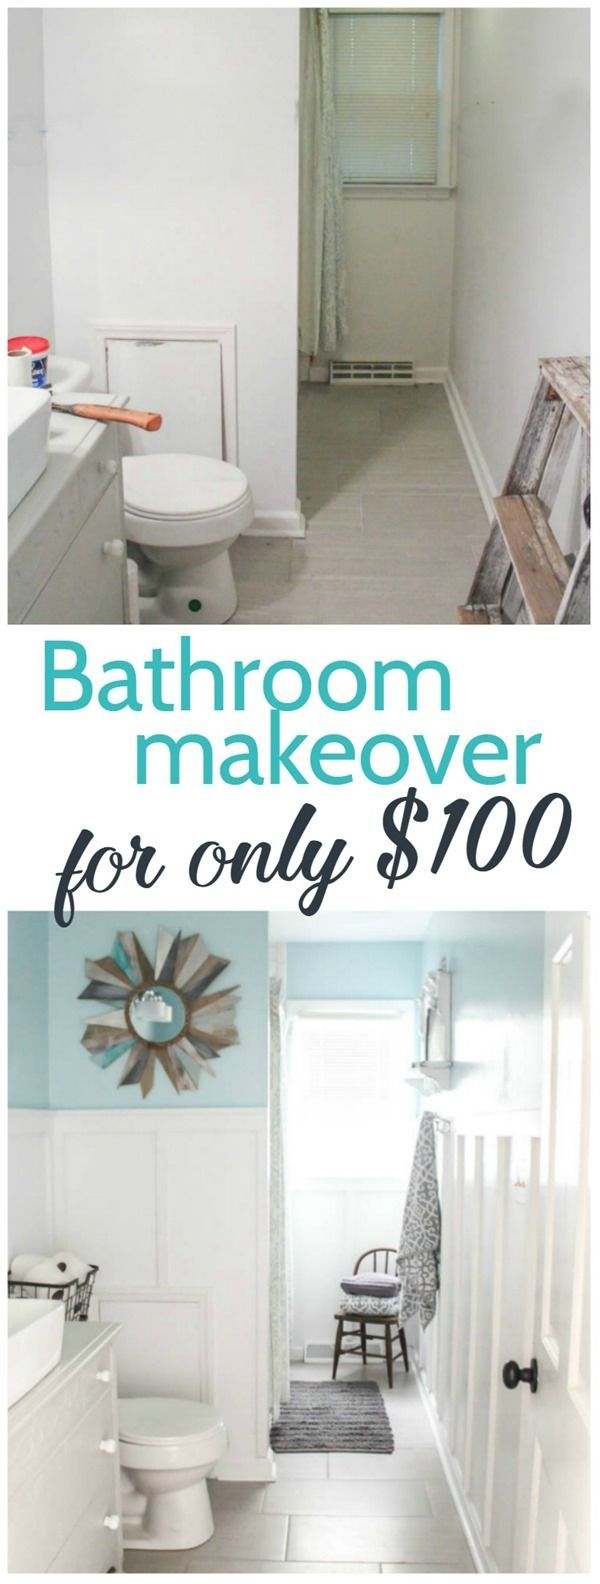 Vintage Modern Bathroom Reveal: $100 Room Challenge. 1920s BathroomDiy  Bathroom IdeasBathroom ...